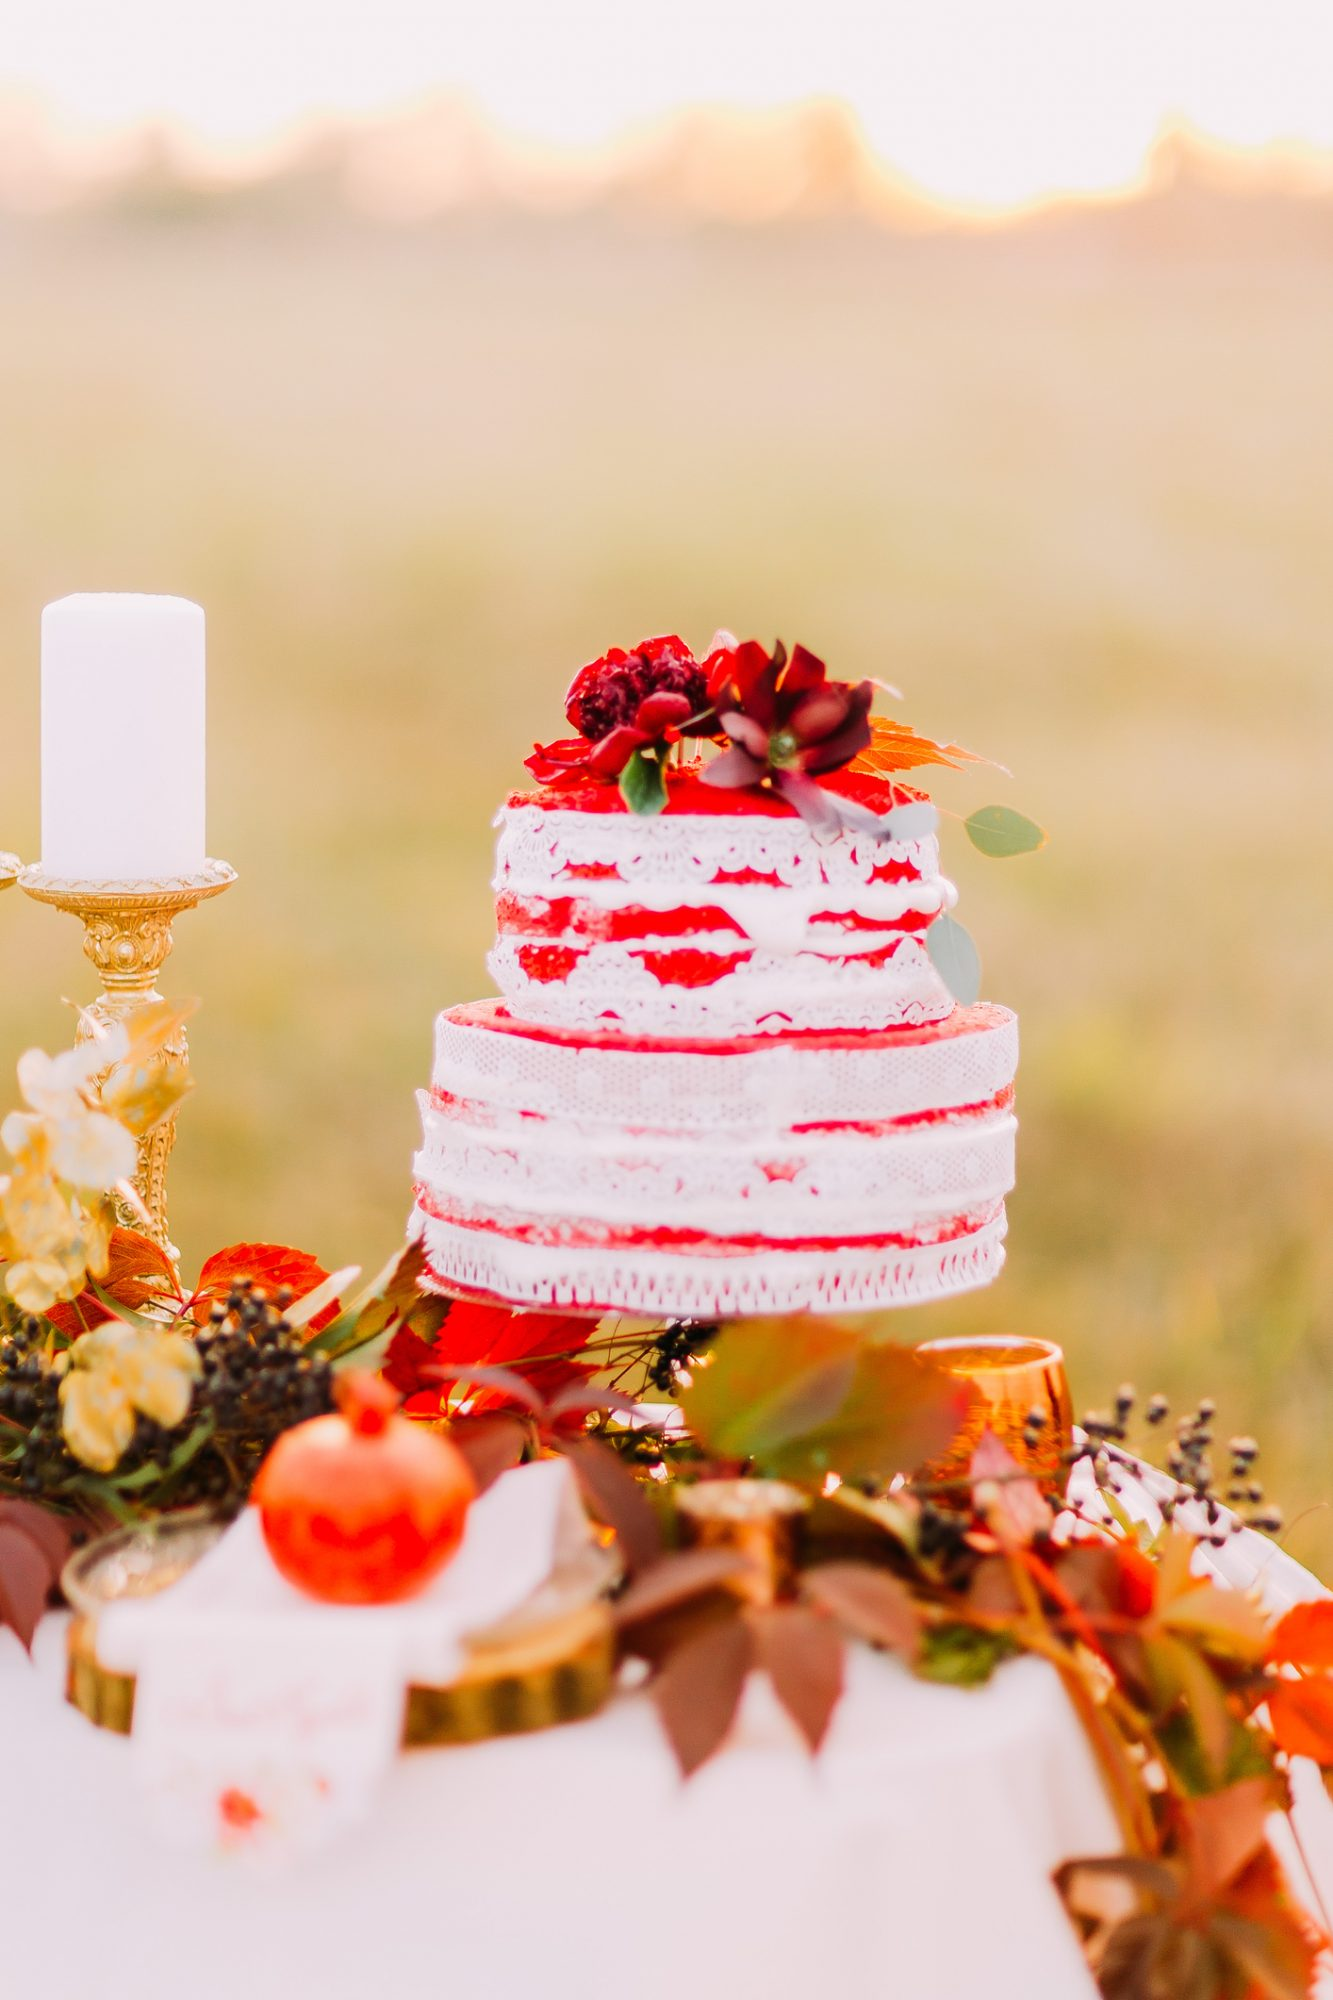 Wedding cake on the table decorated with fallen leaves